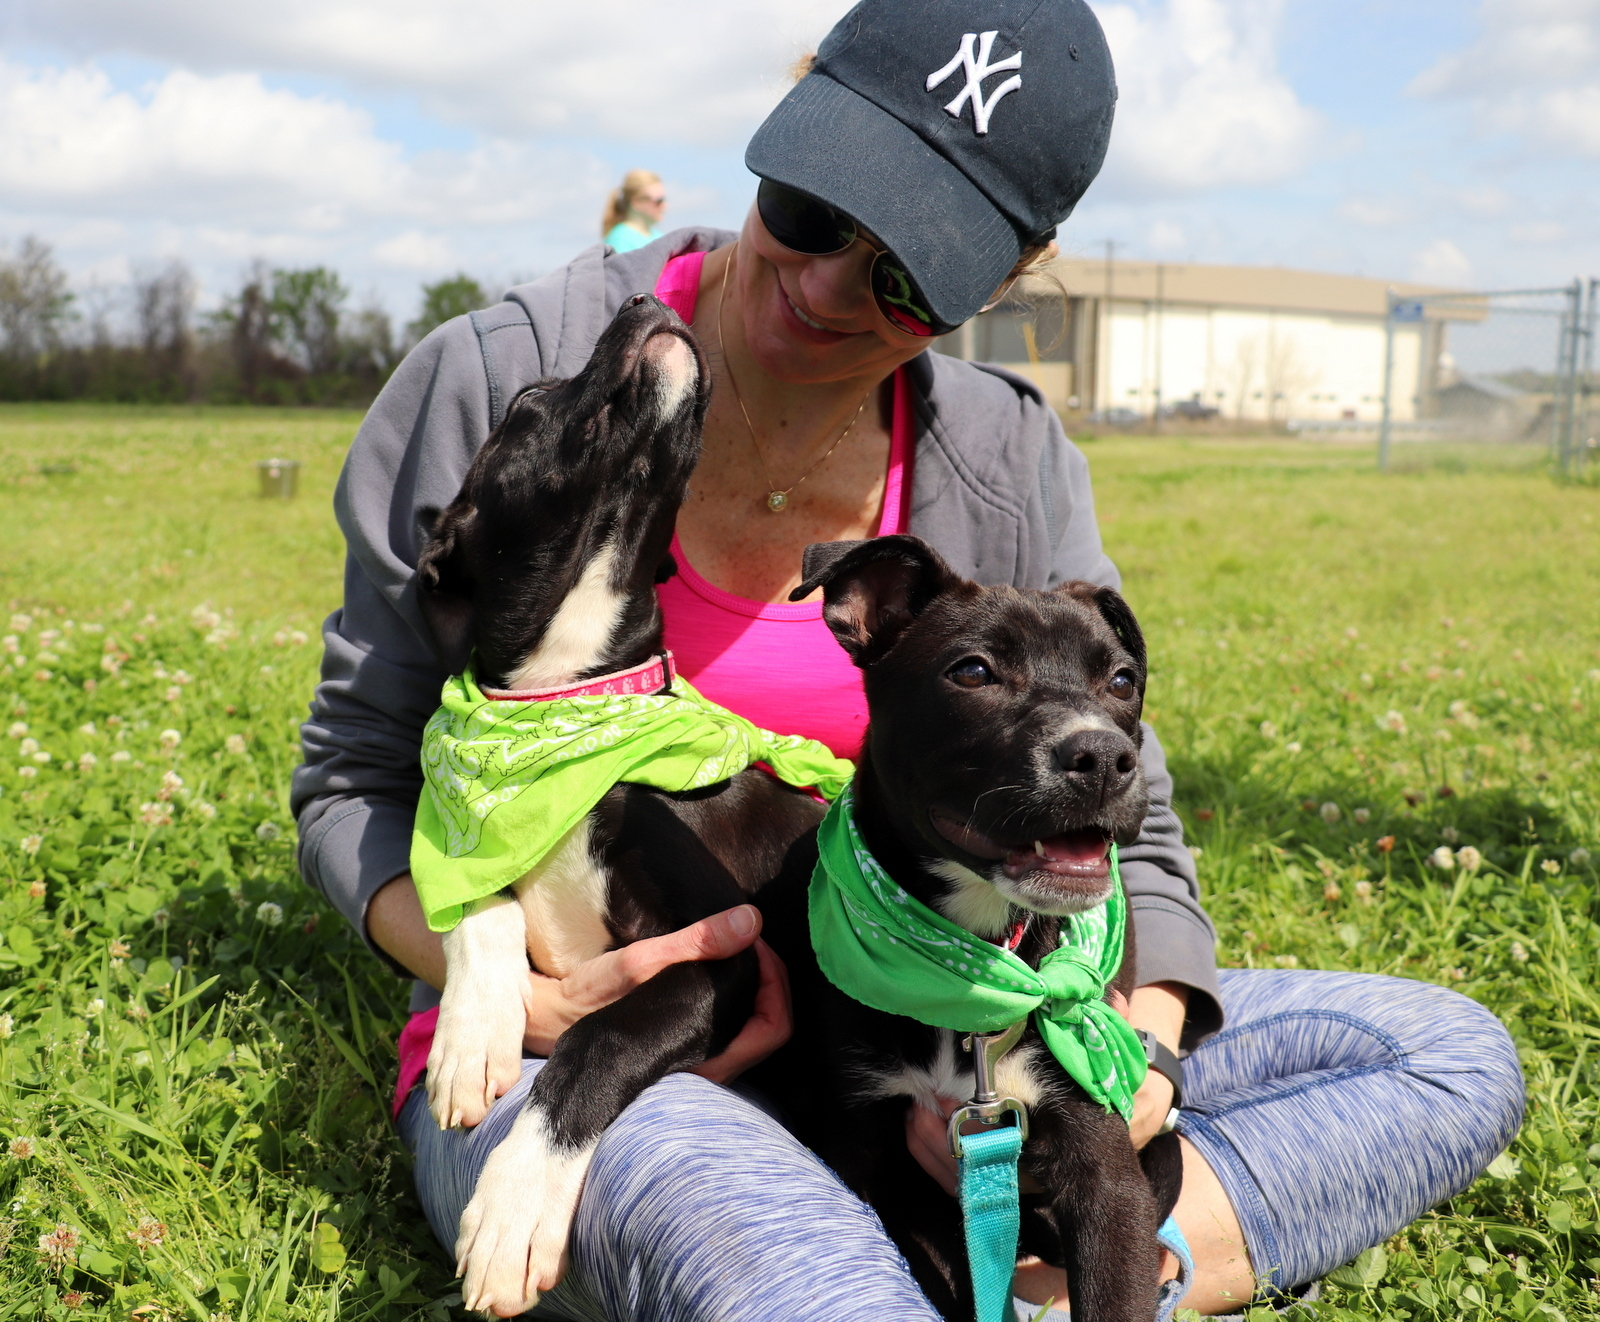 Pets for Adoption at Jackson Friends of Animal Shelter, in